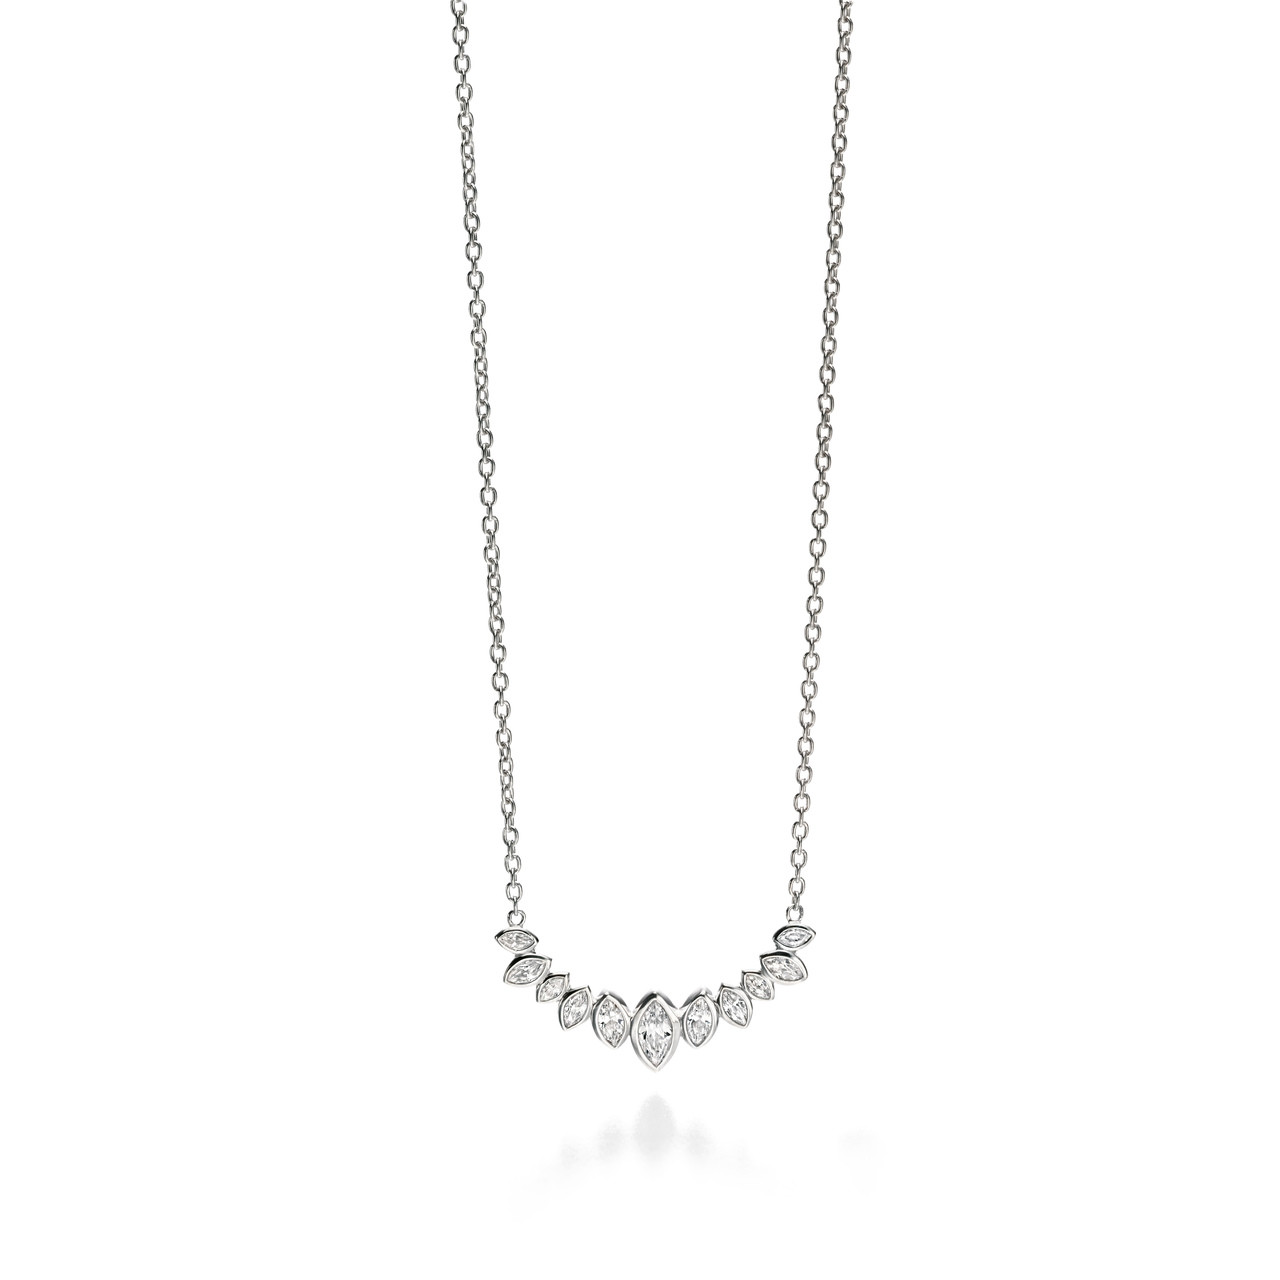 necklace tiny adina reyter marquise products pave pav